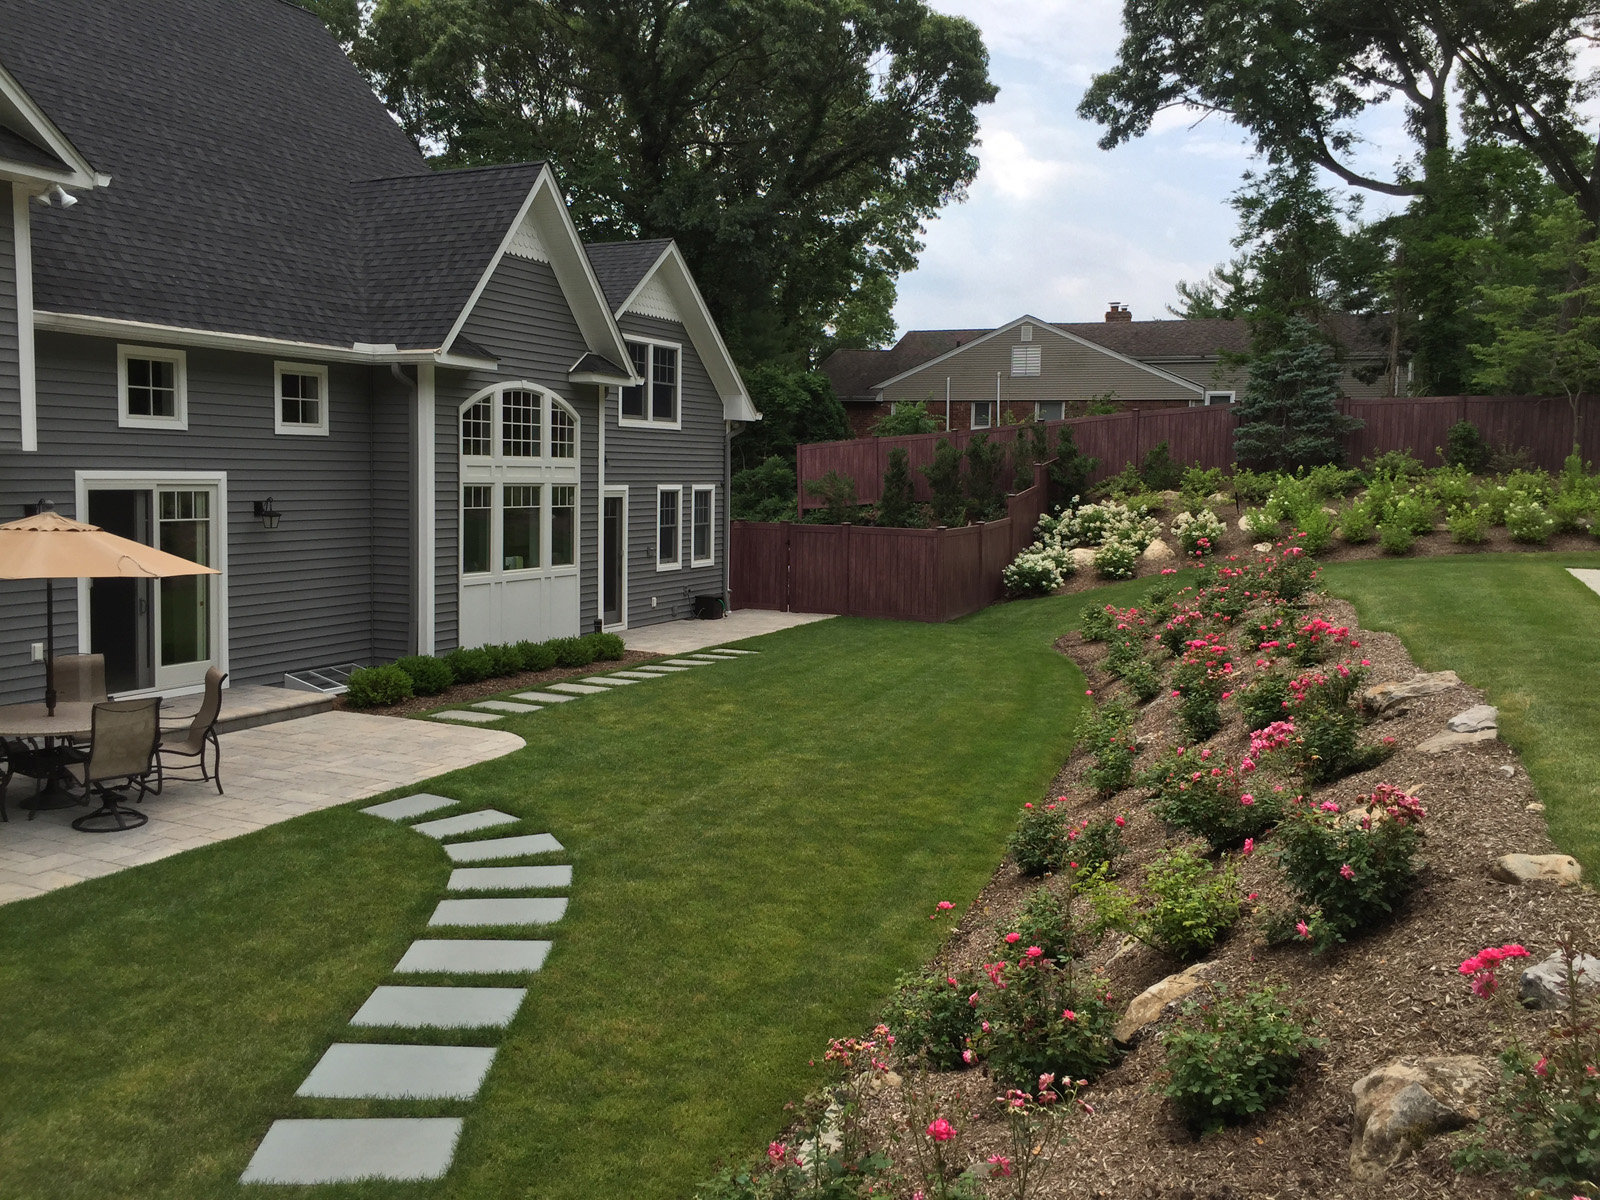 Professional walkway landscapedesign company in Long Island, NY